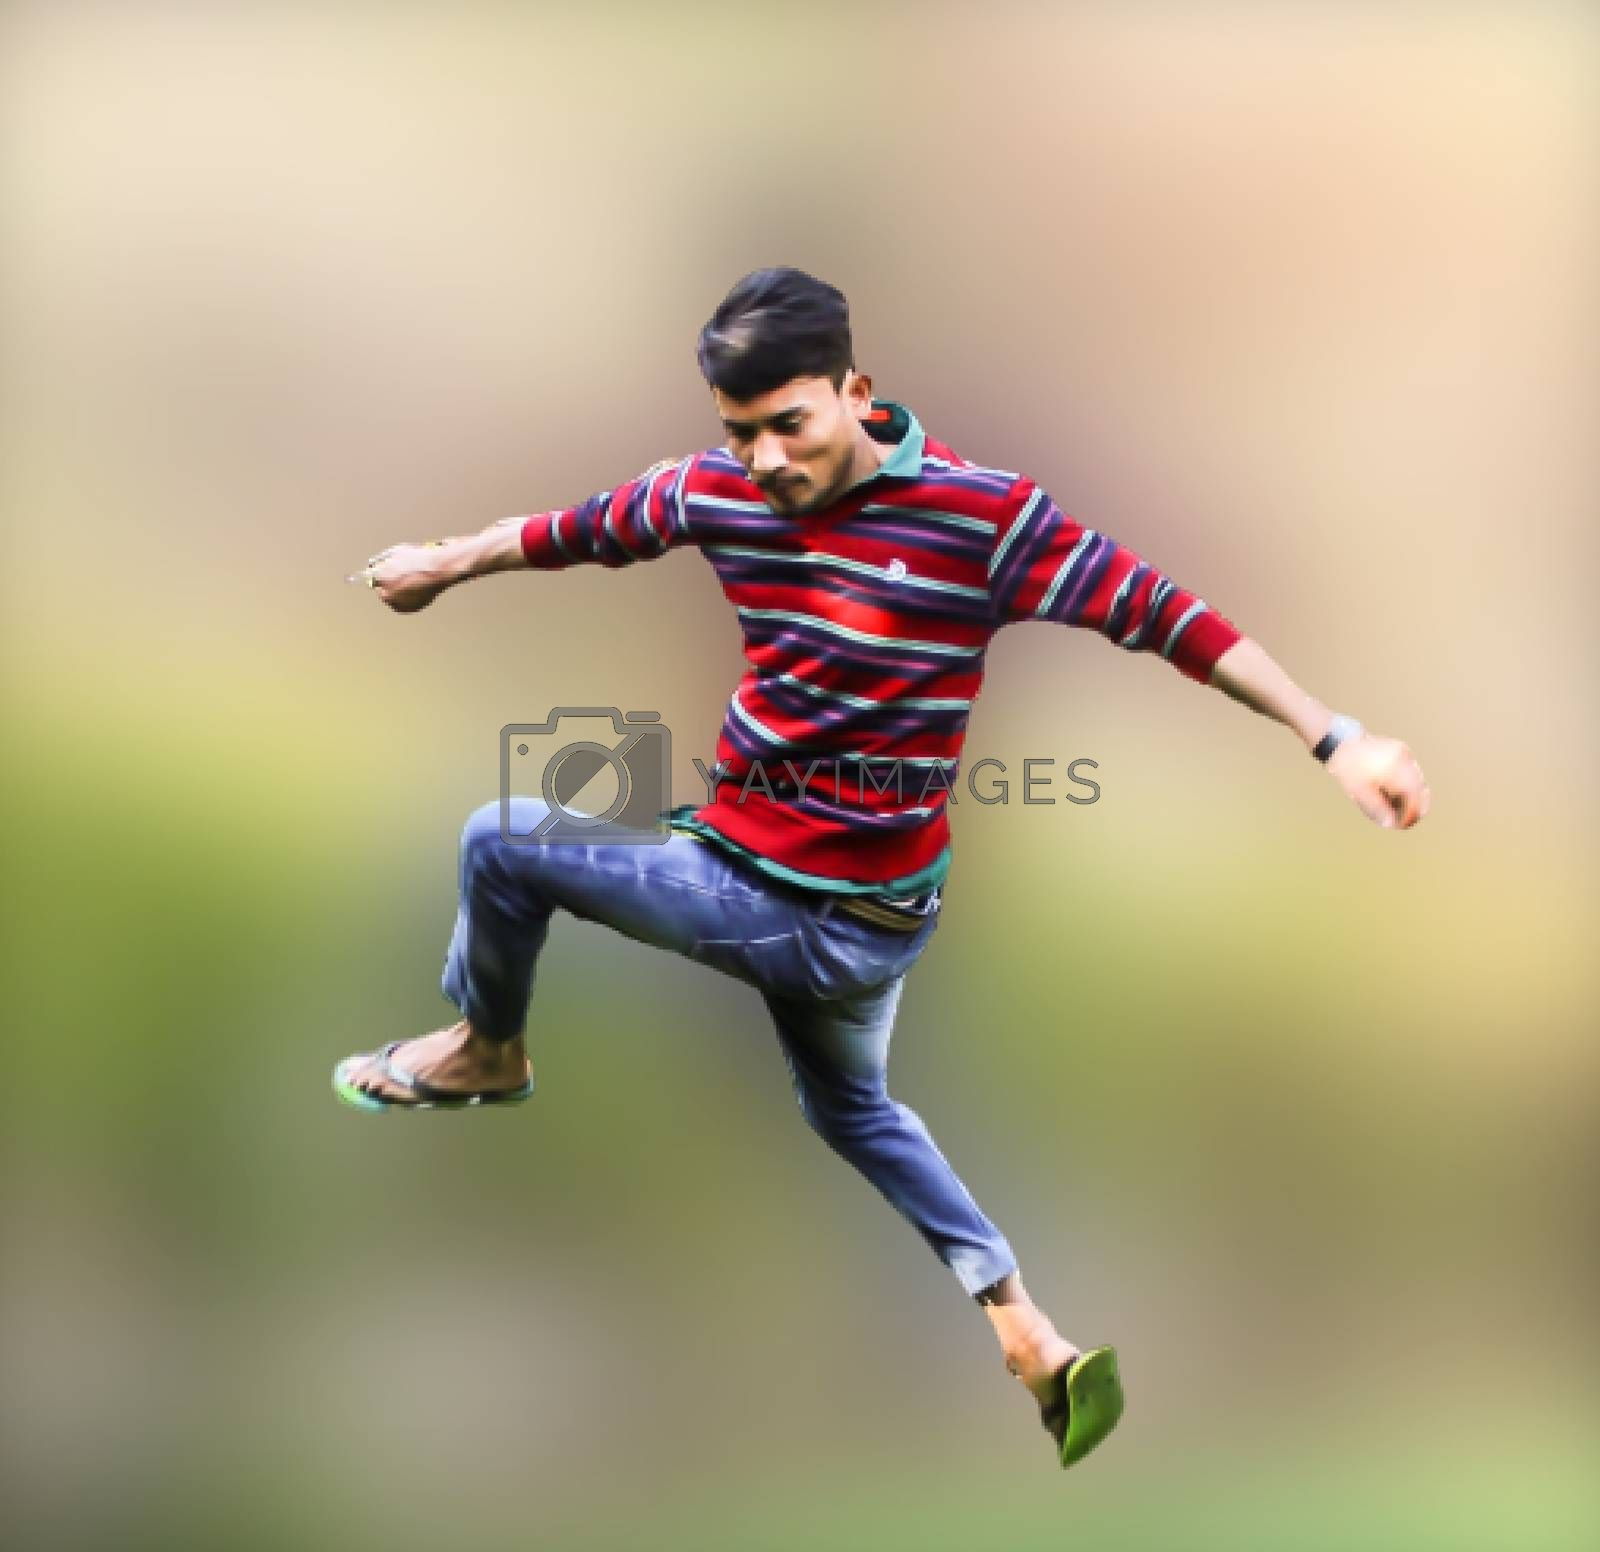 A picture of model in jumping move